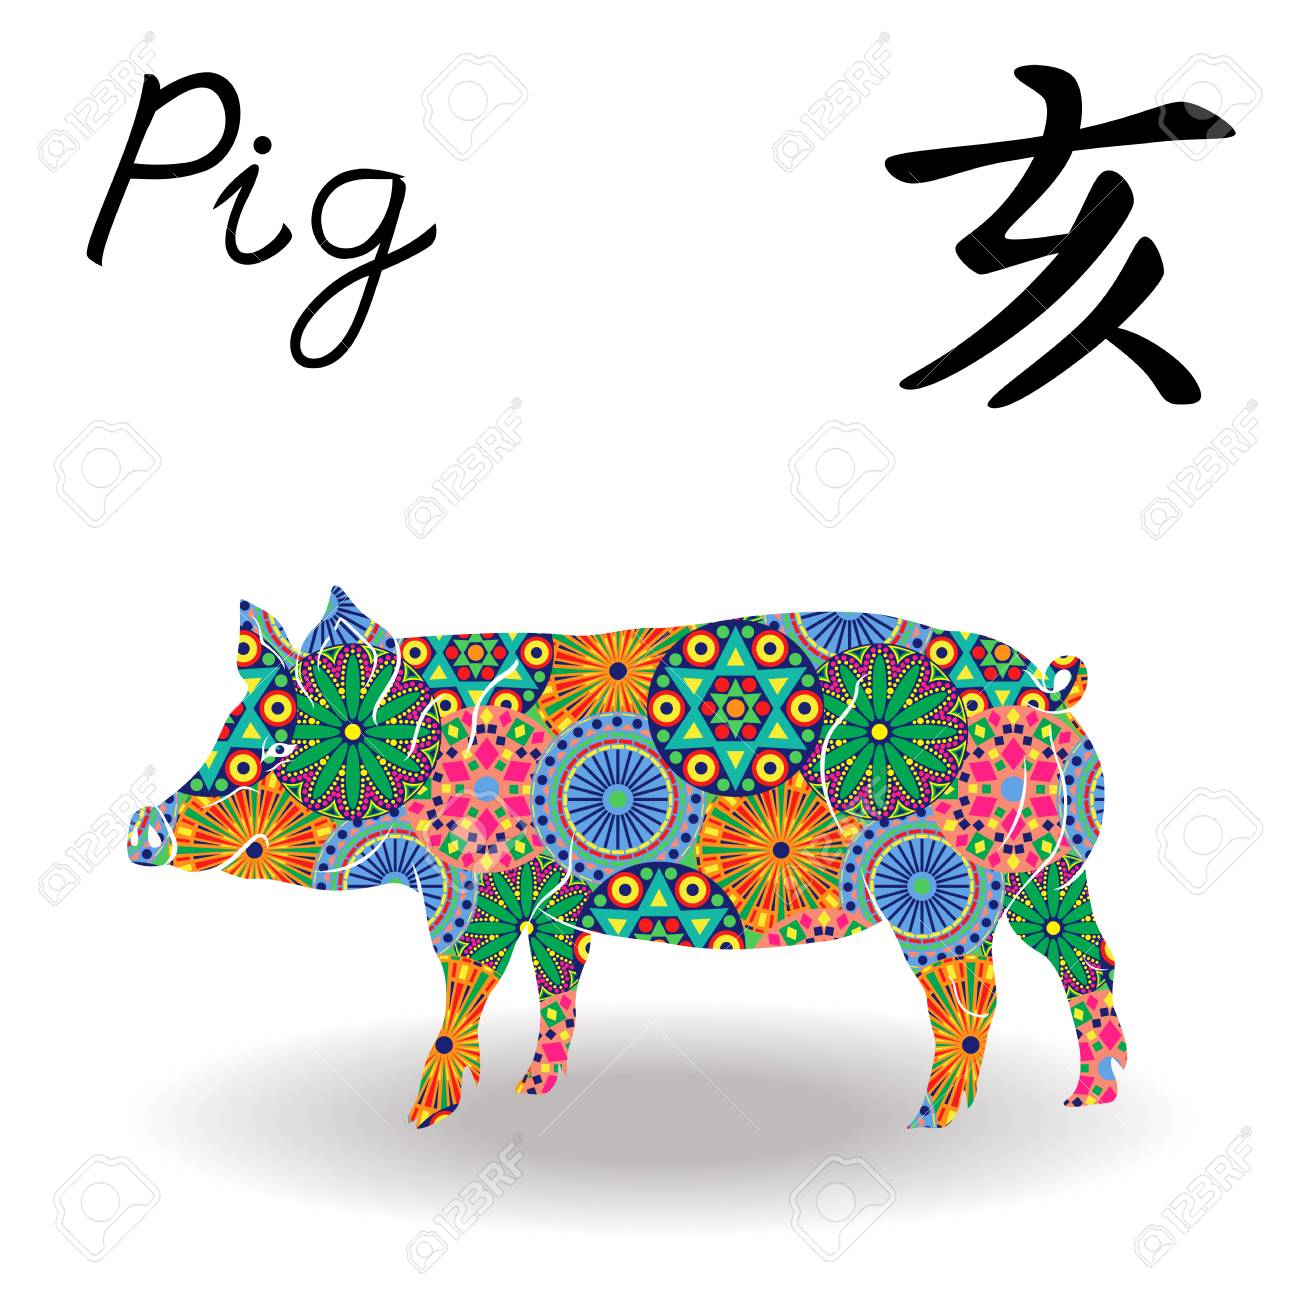 Chinese Zodiac Sign Pig, Fixed Element Water, Symbol Of New Year..